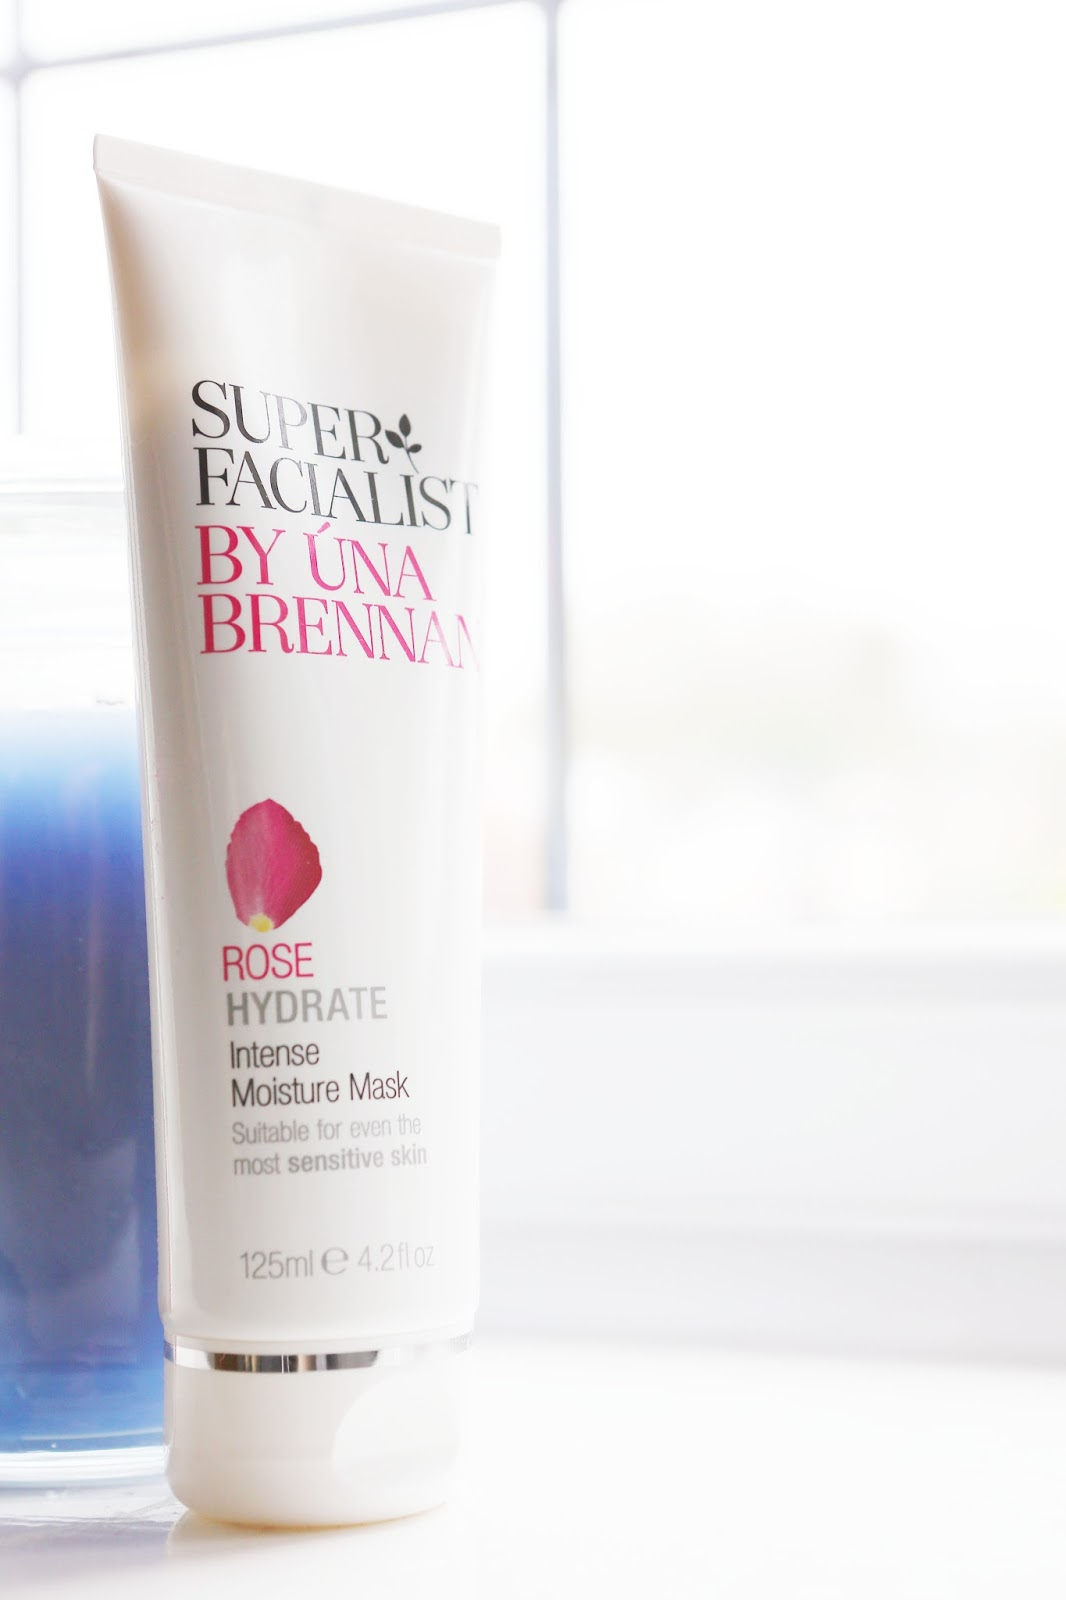 superfacialist by una brennan rose hydrate intense